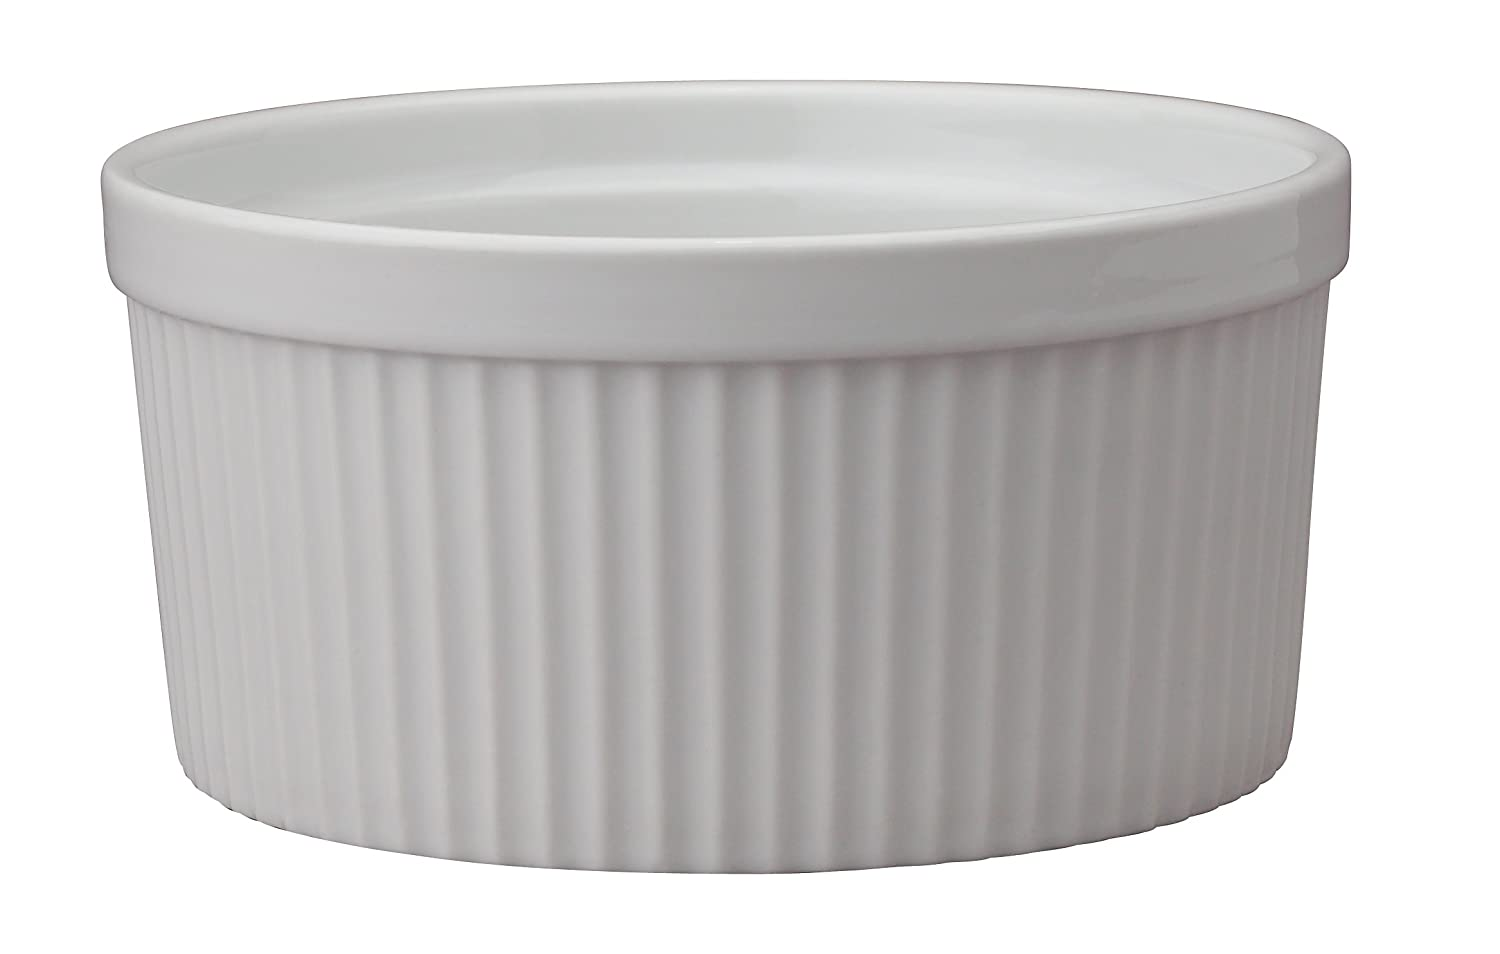 HIC Porcelain Souffle 6-inch, 32-ounce Capacity HIC Brands that Cook 98010